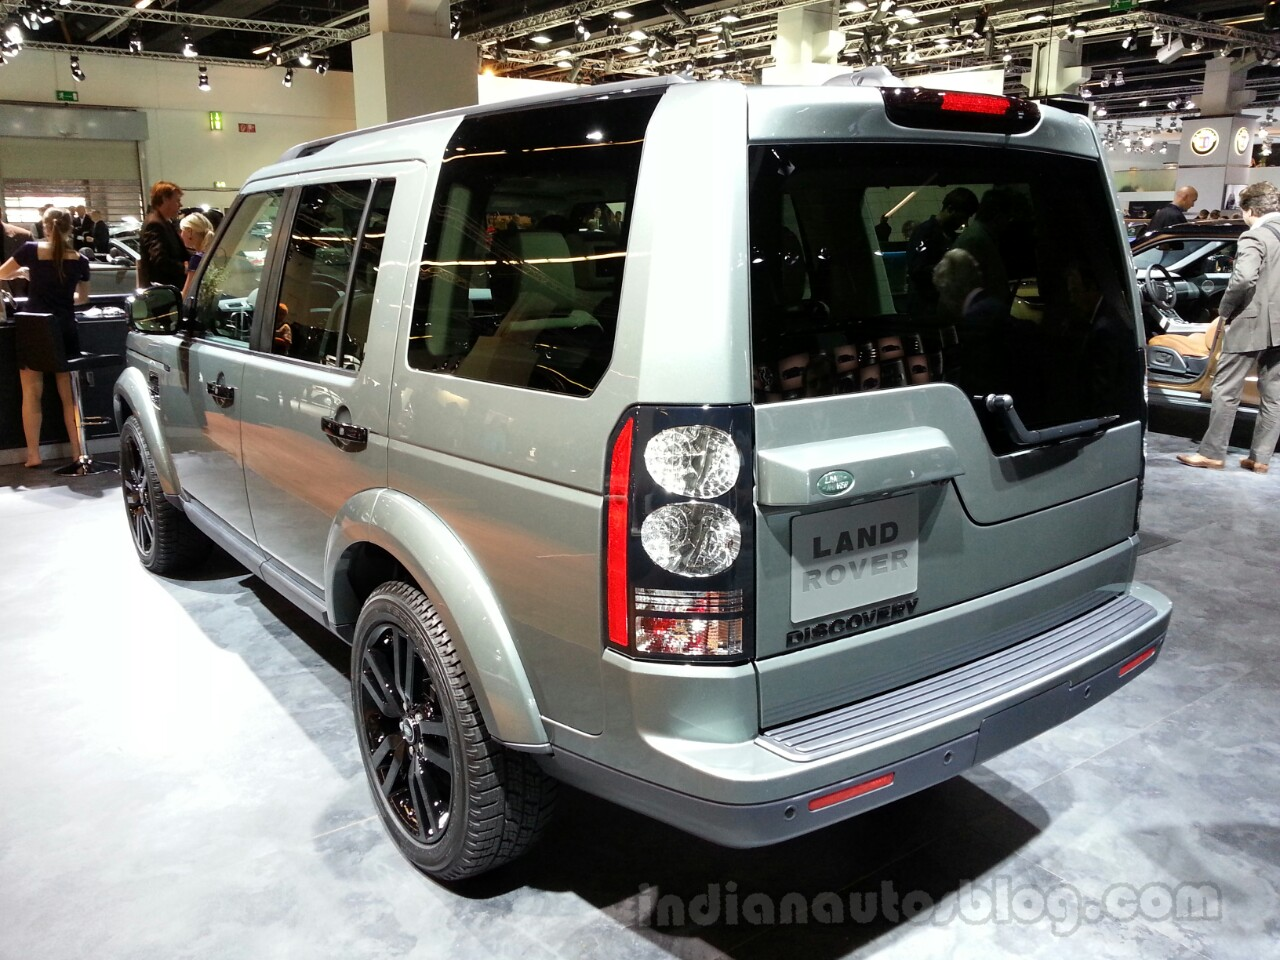 2014 Land Rover Discovery Rear Left